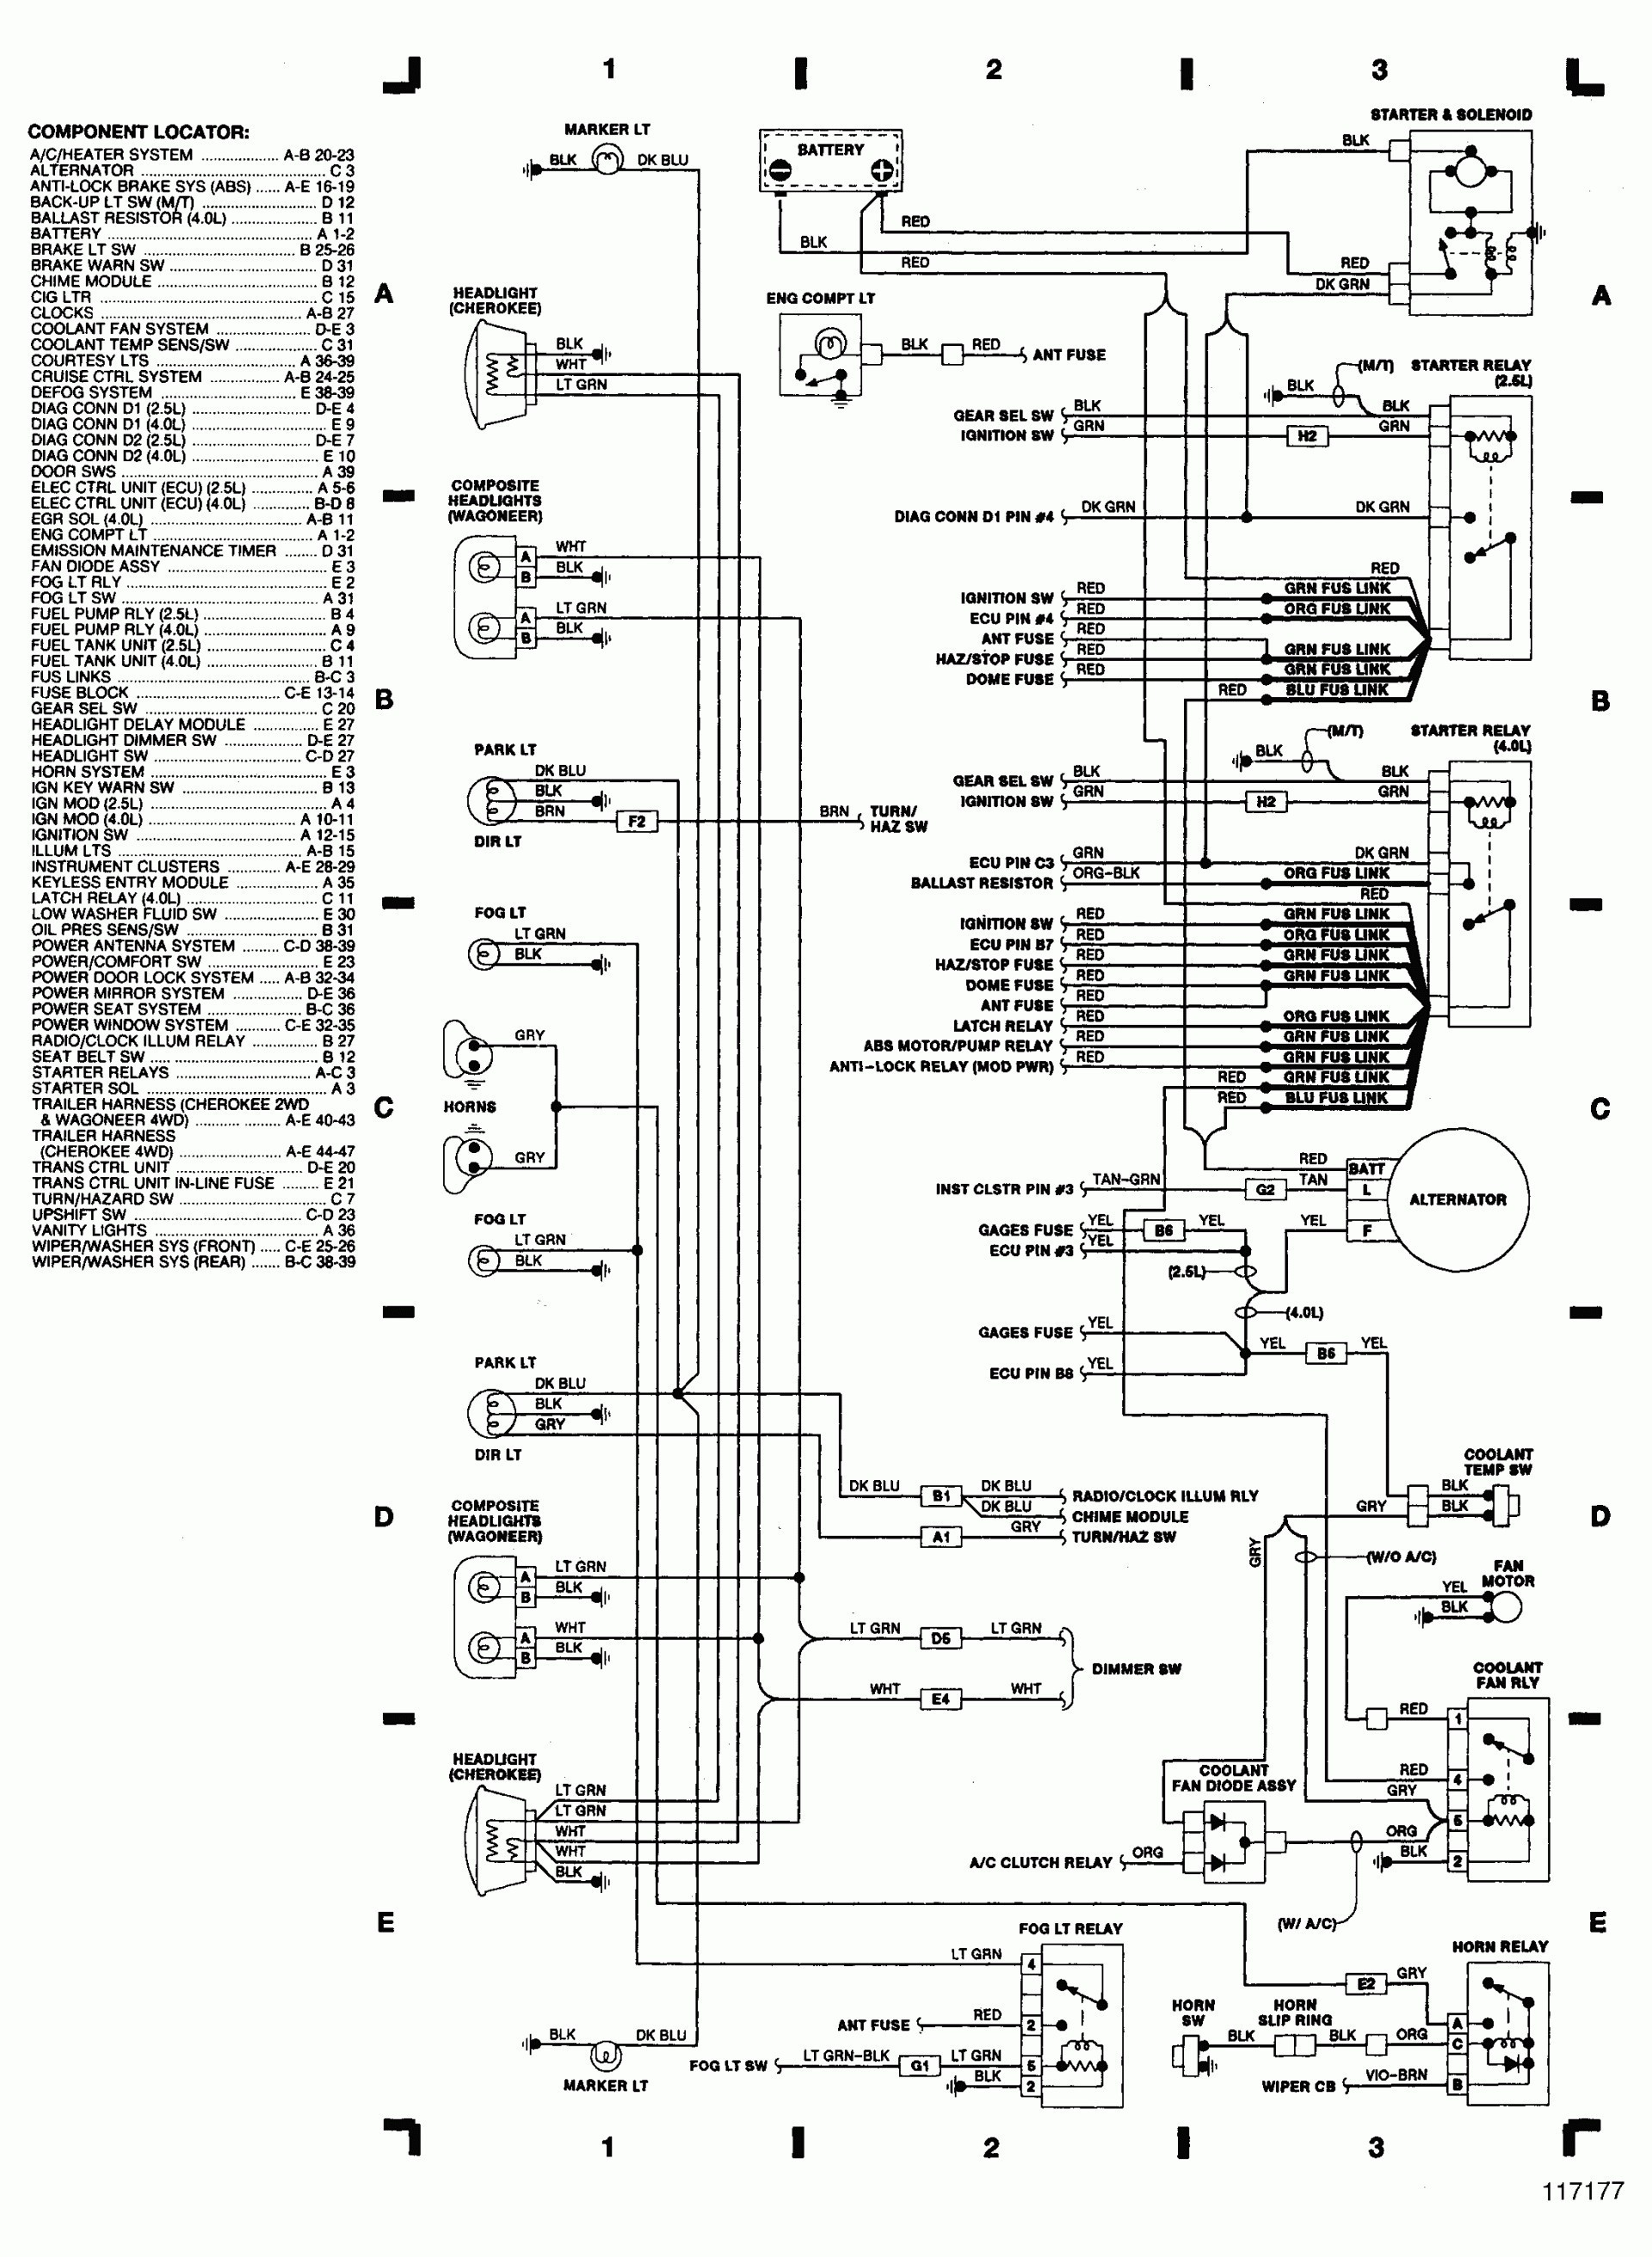 John Deere 345 Schematic 55c0 John Deere Stereo Wiring Diagram Of John Deere 345 Schematic Need A 345 Wiring Diagram Pdf Please